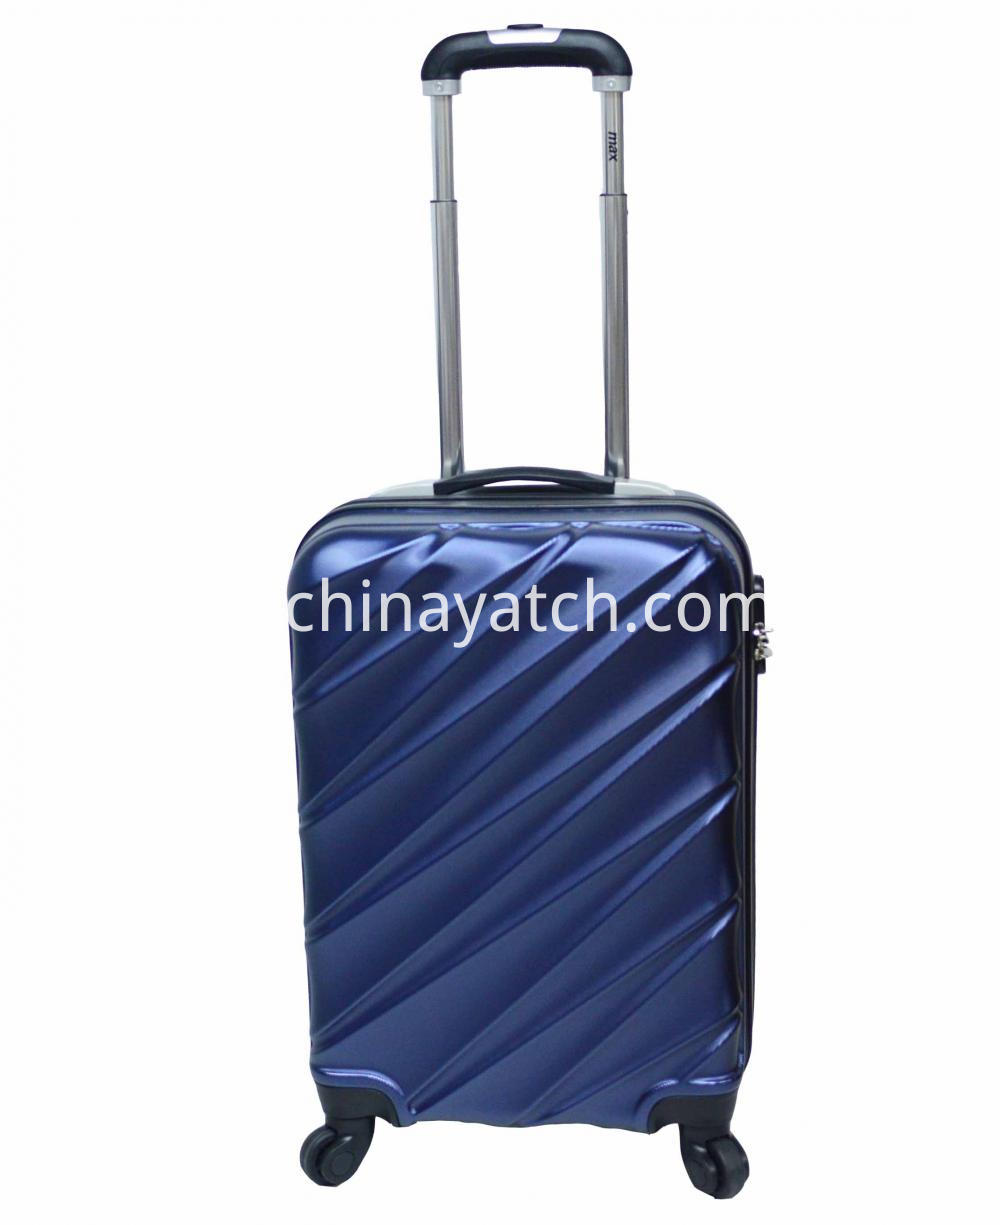 Business Travel Luggage